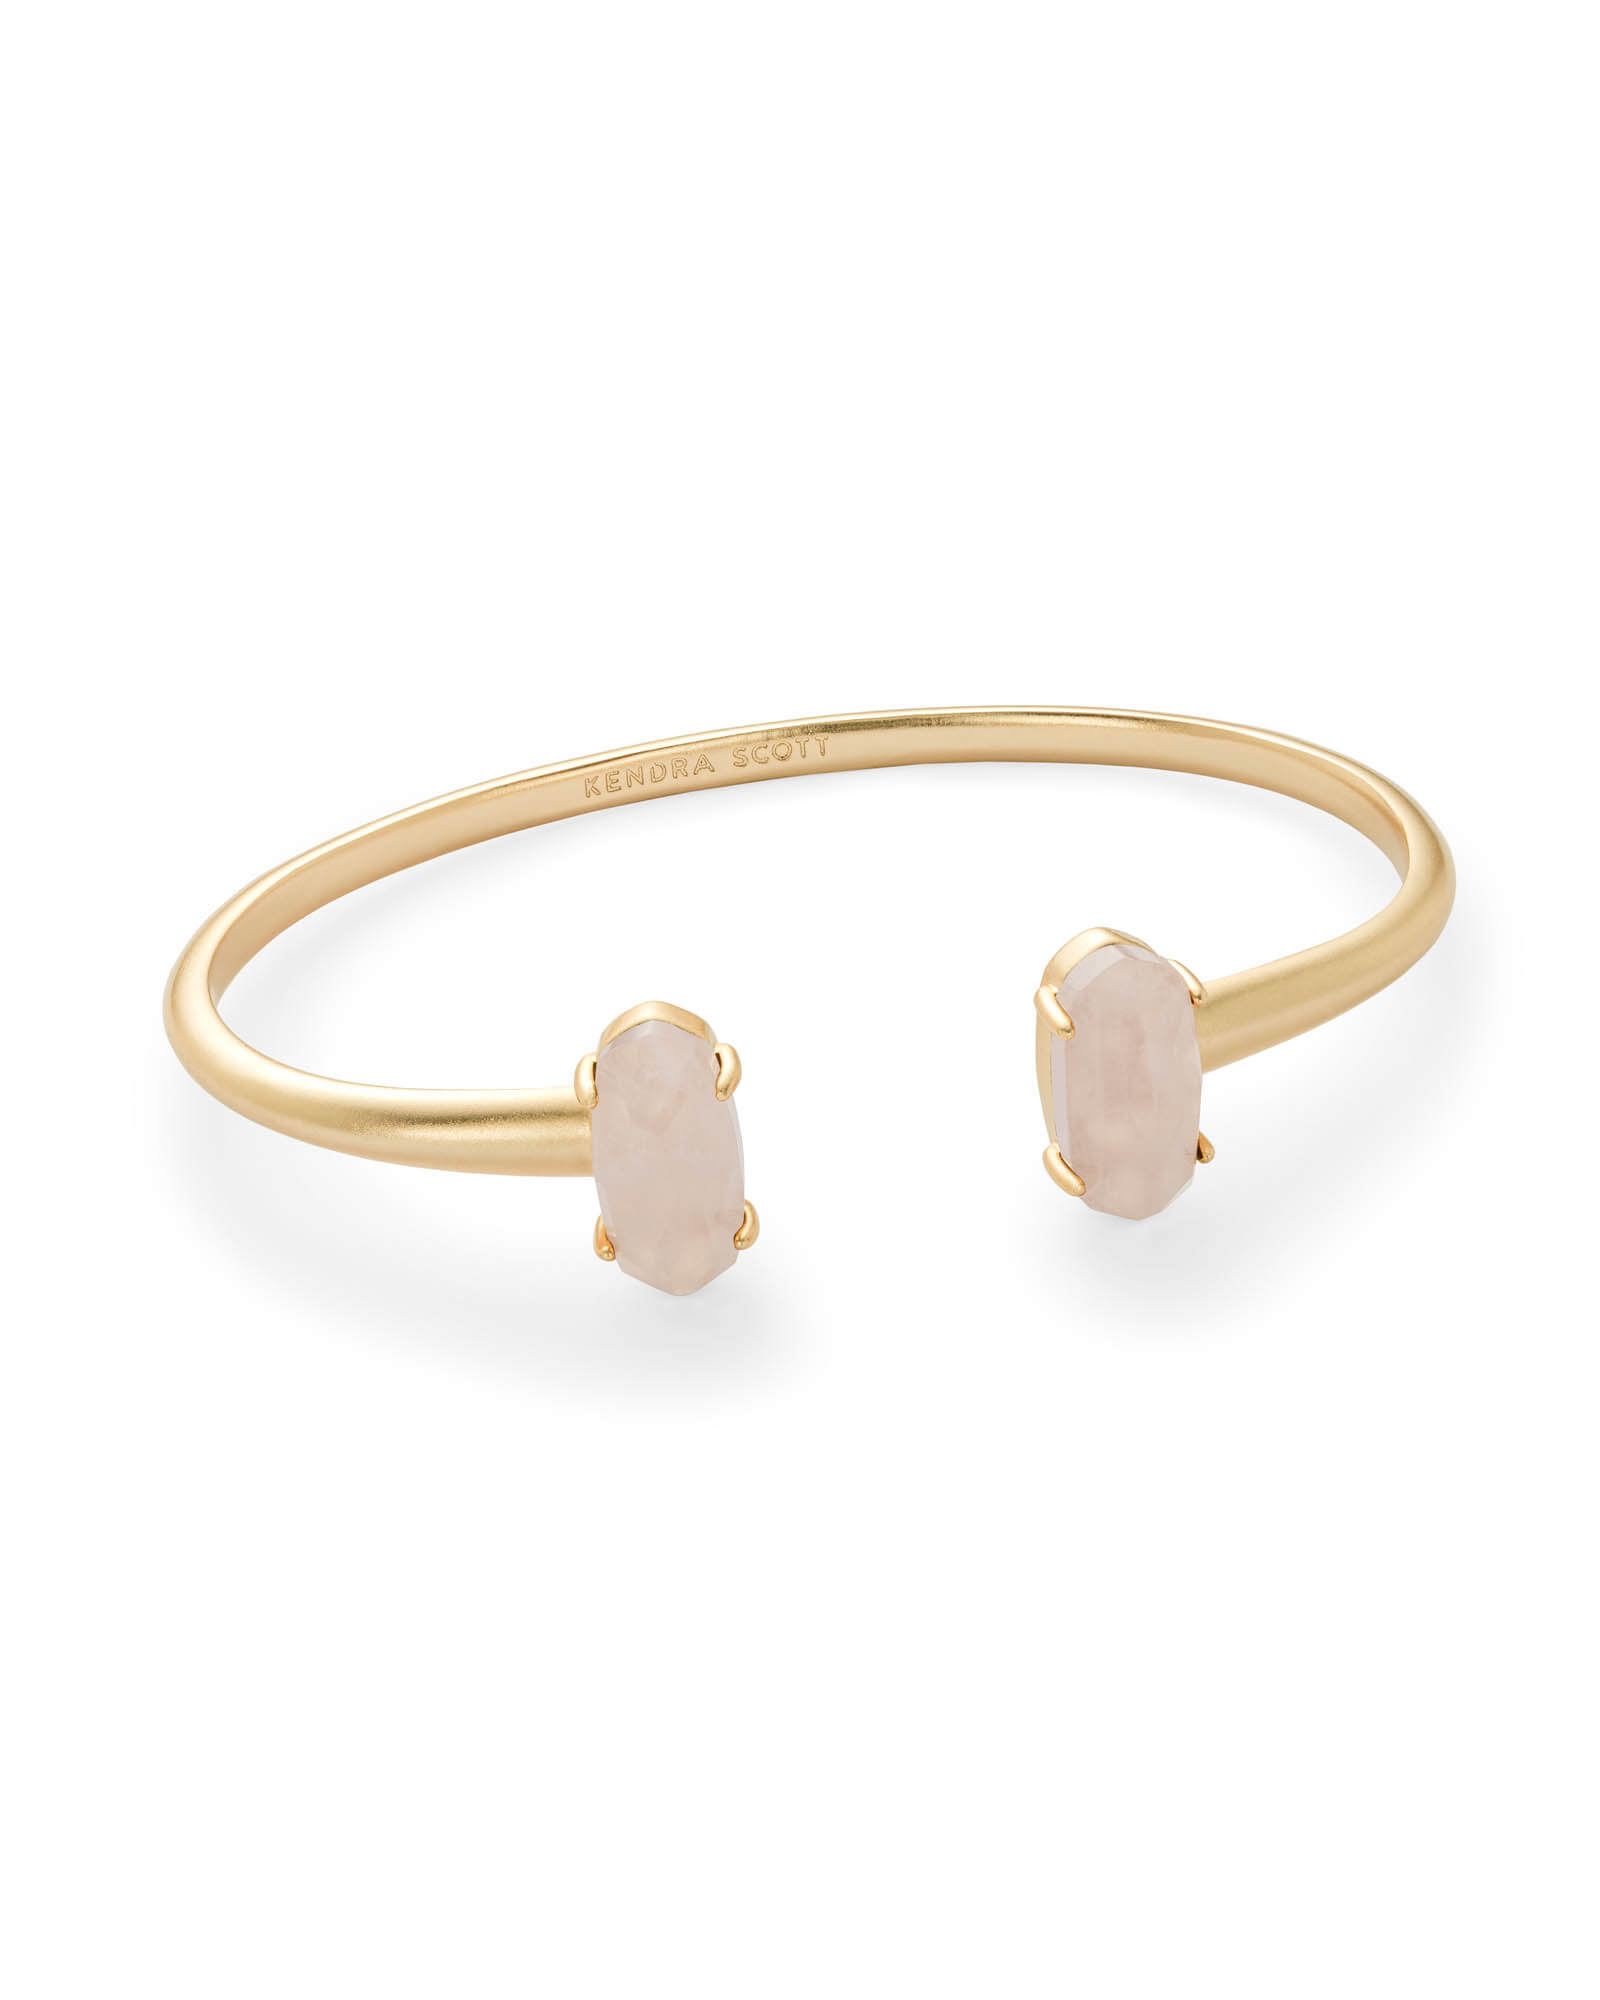 Edie Gold Cuff Bracelet in Rose Quartz